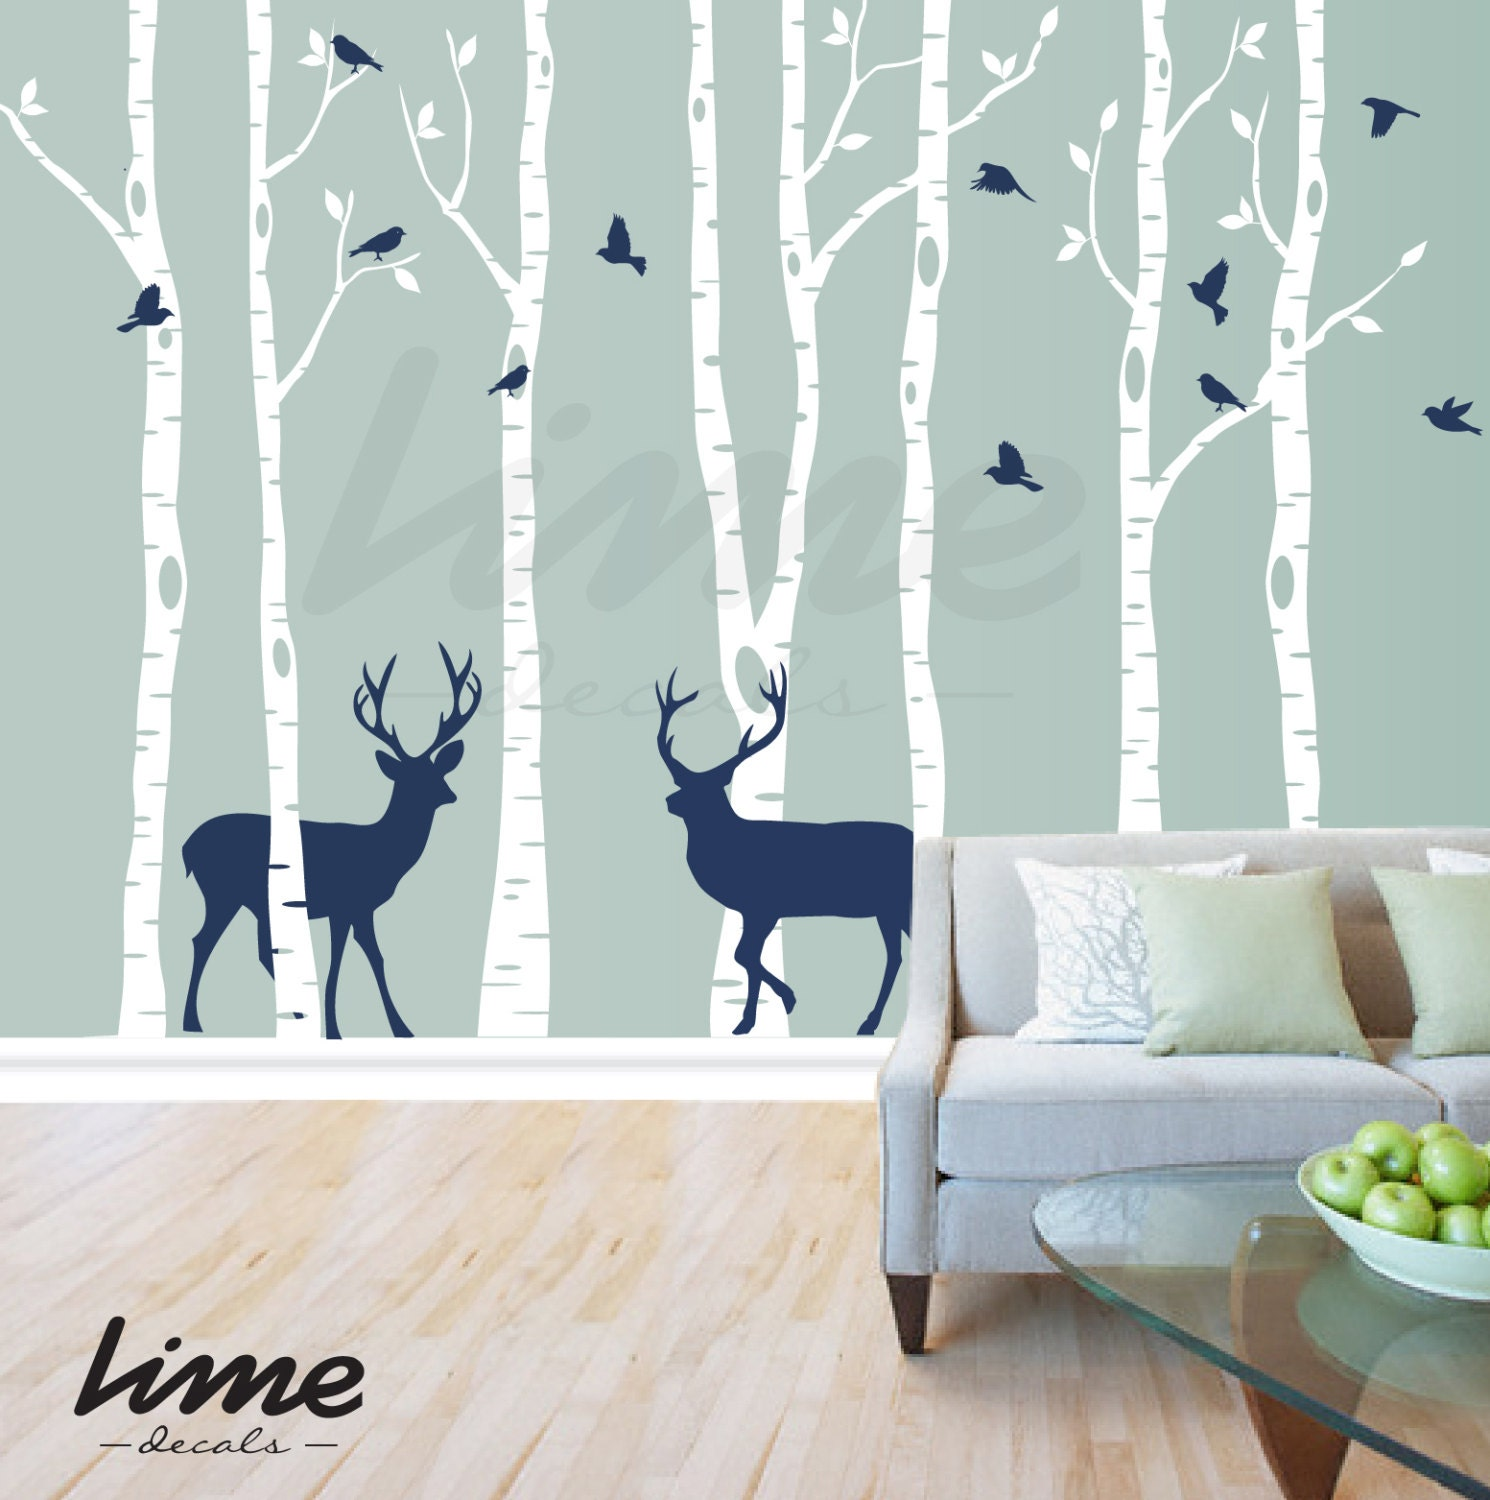 Birch Tree Deer Wall Decal Forest Birch Trees Birch Trees - Vinyl decals for walls etsy